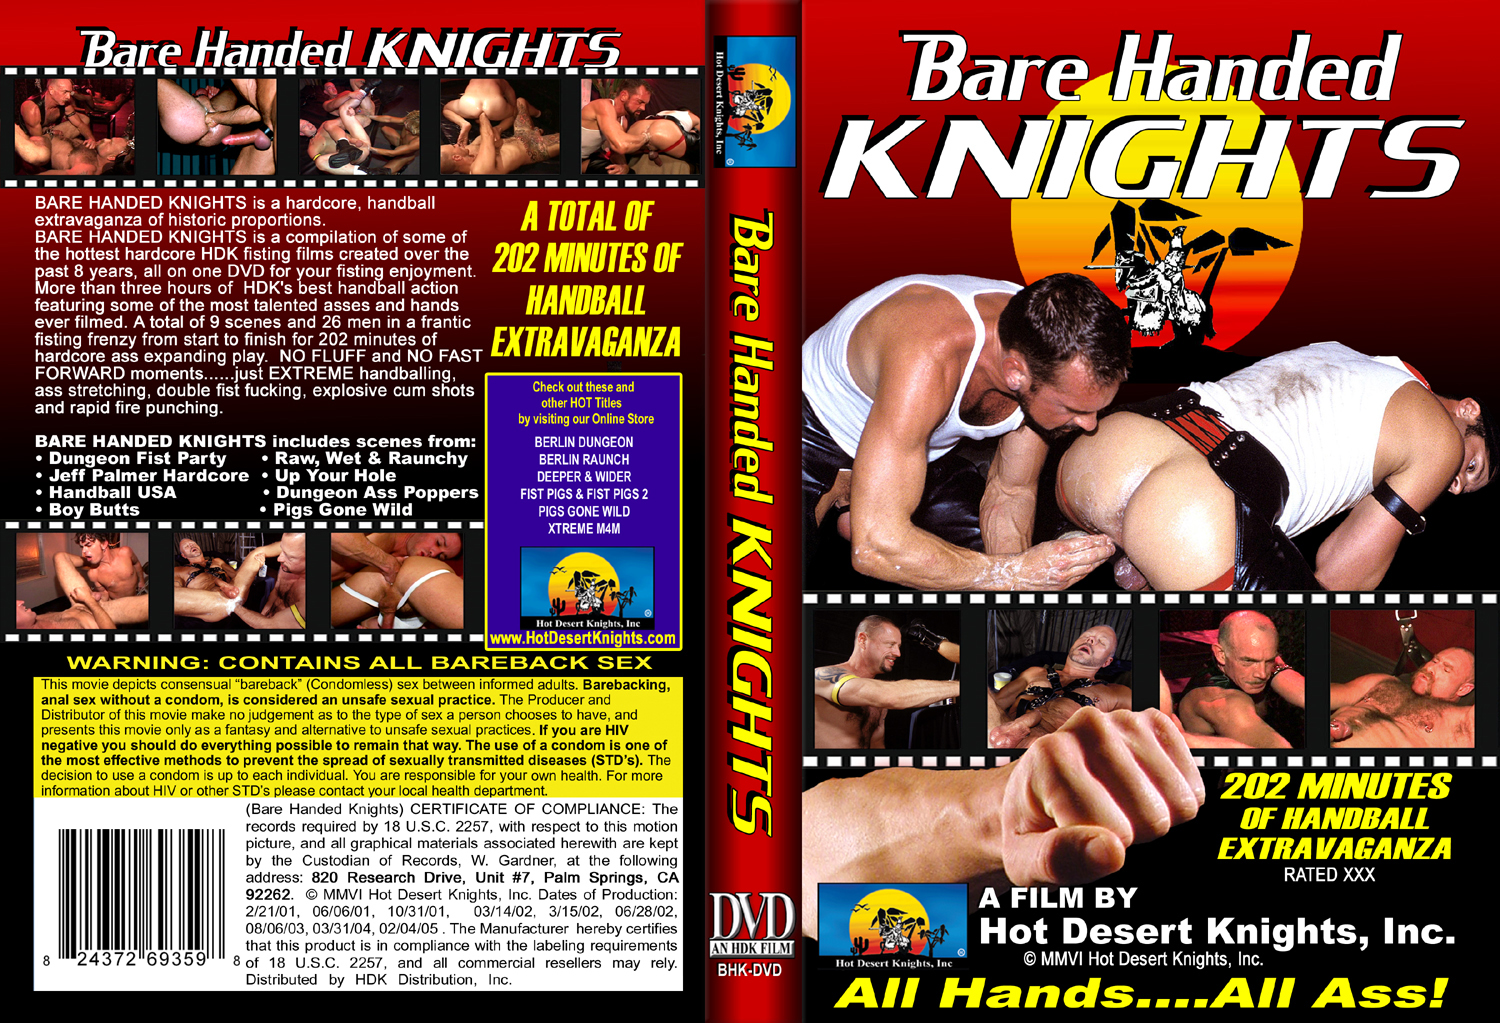 HDK Movie: BARE HANDED KNIGHTS